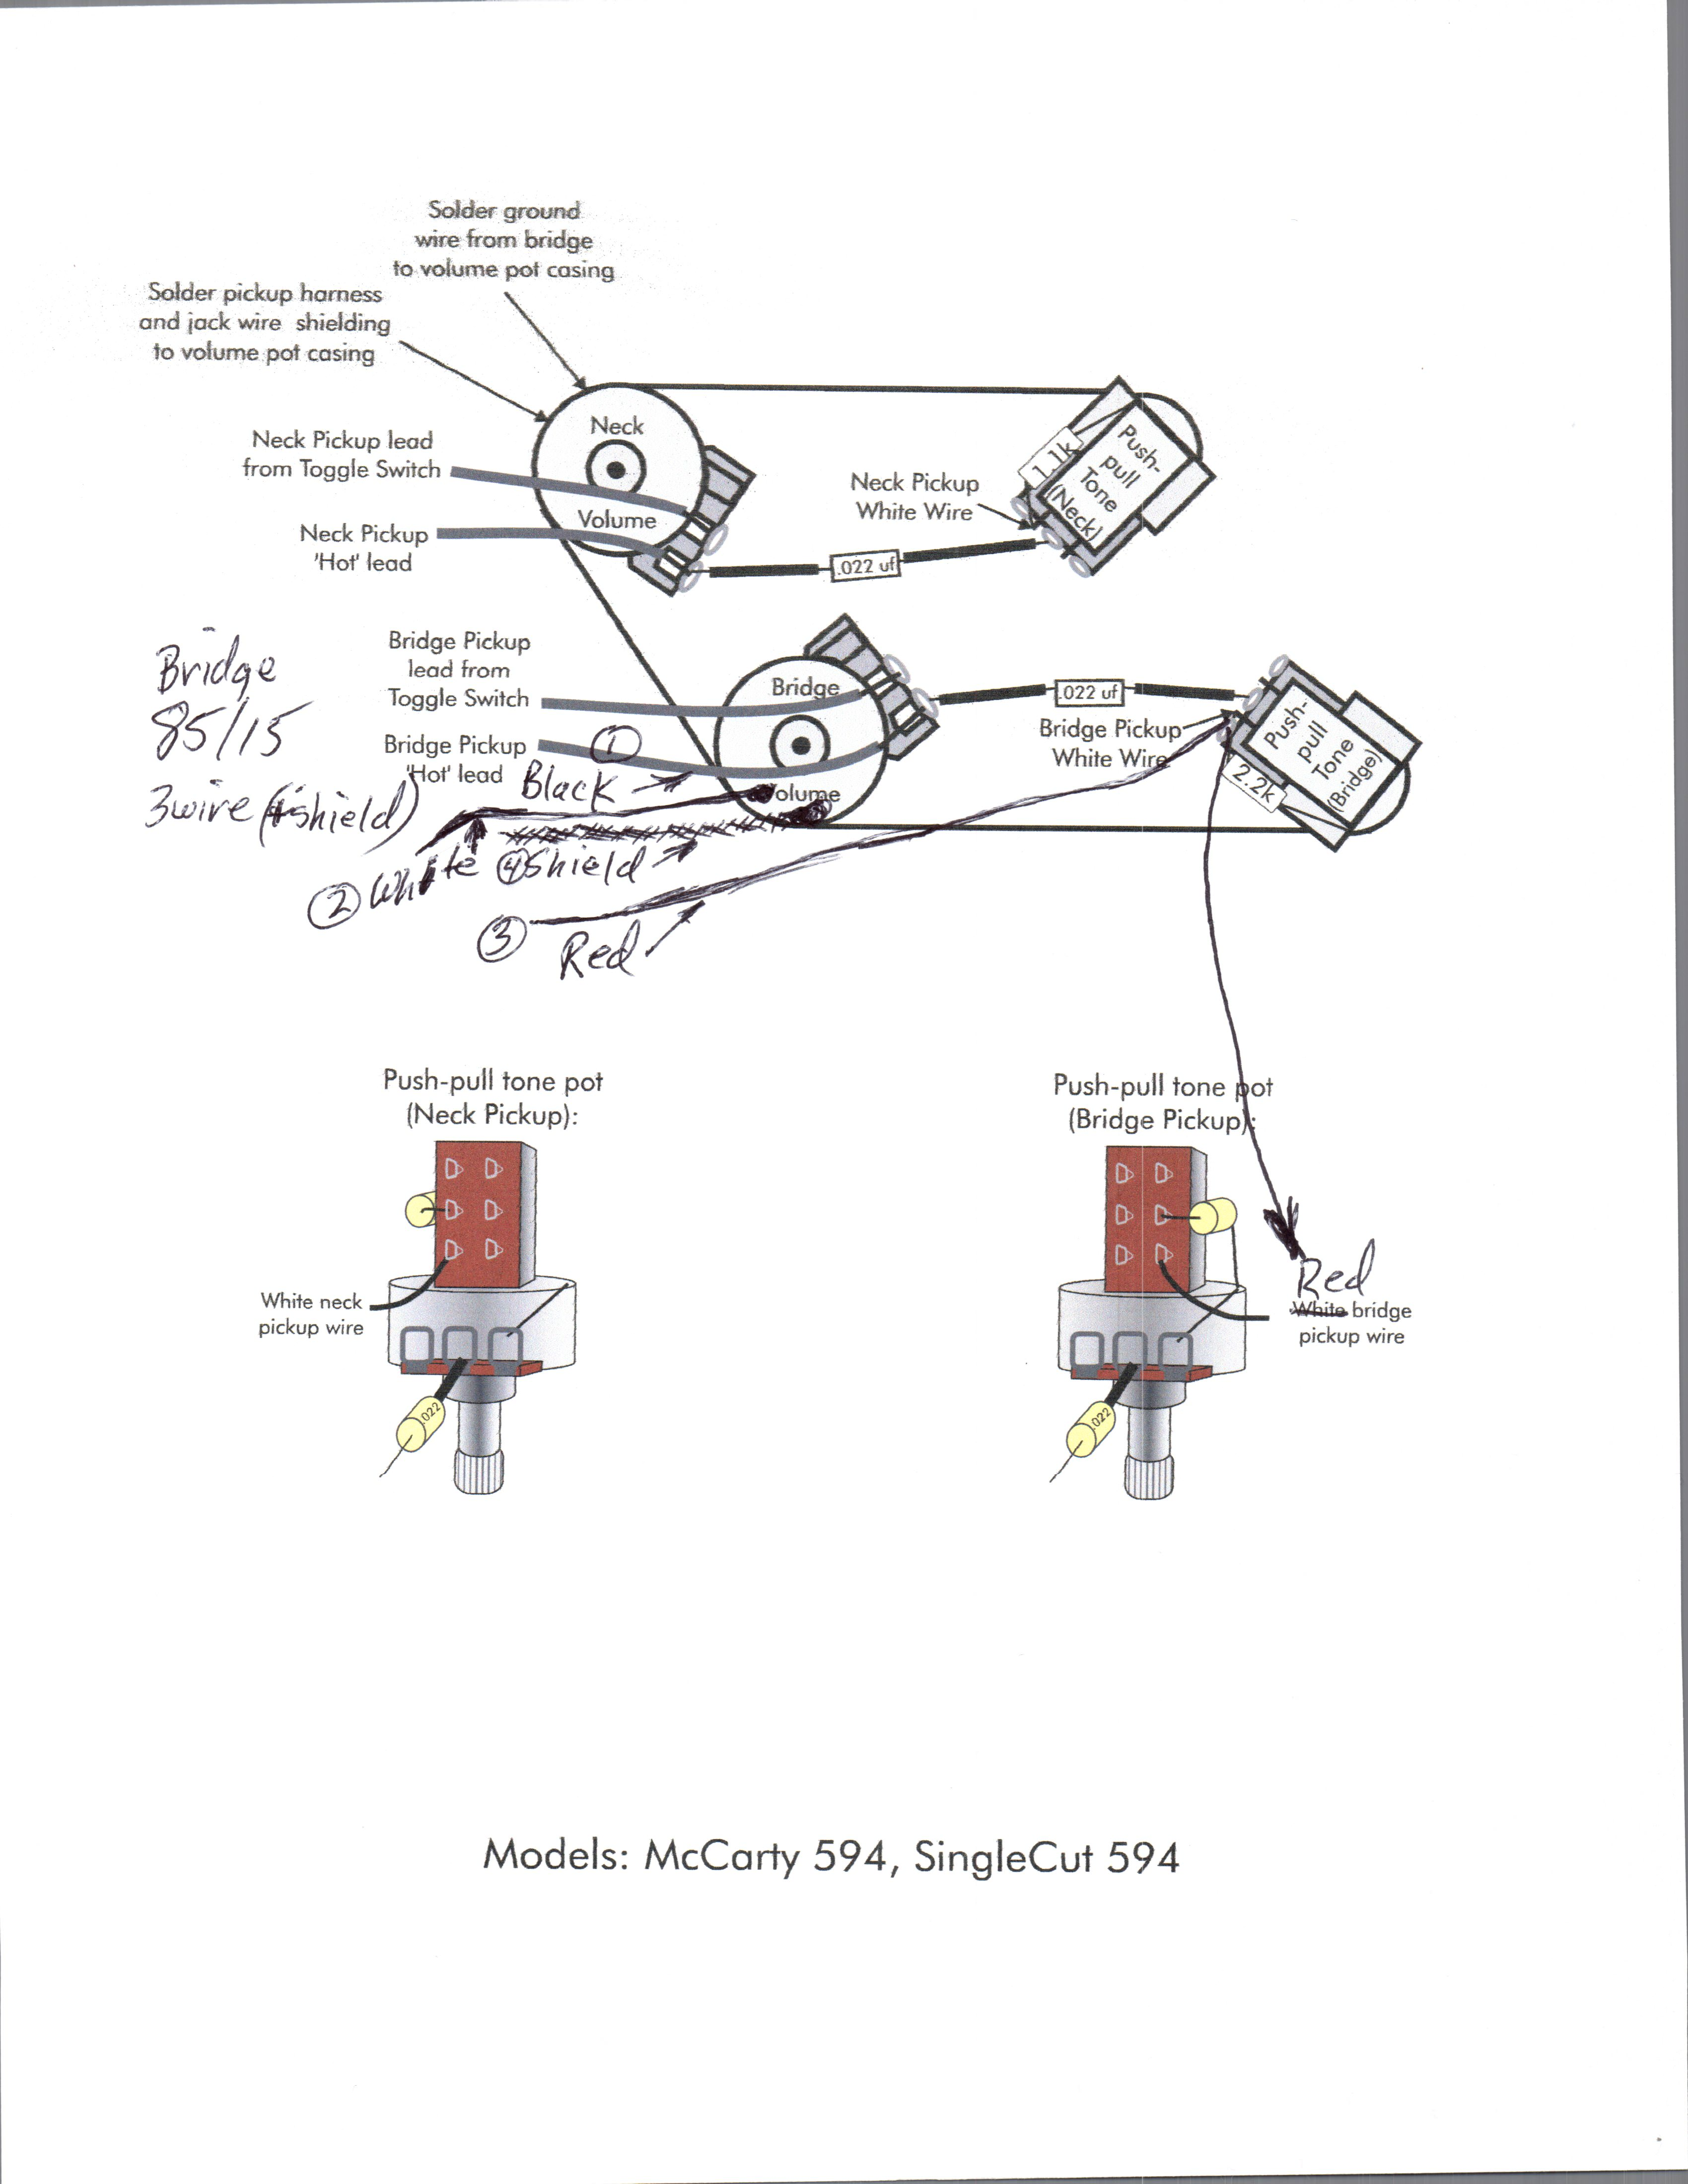 Be 5508 Prs Rotary Switch Wiring Diagrams Besides 3 Pole 4 Position Rotary Schematic Wiring